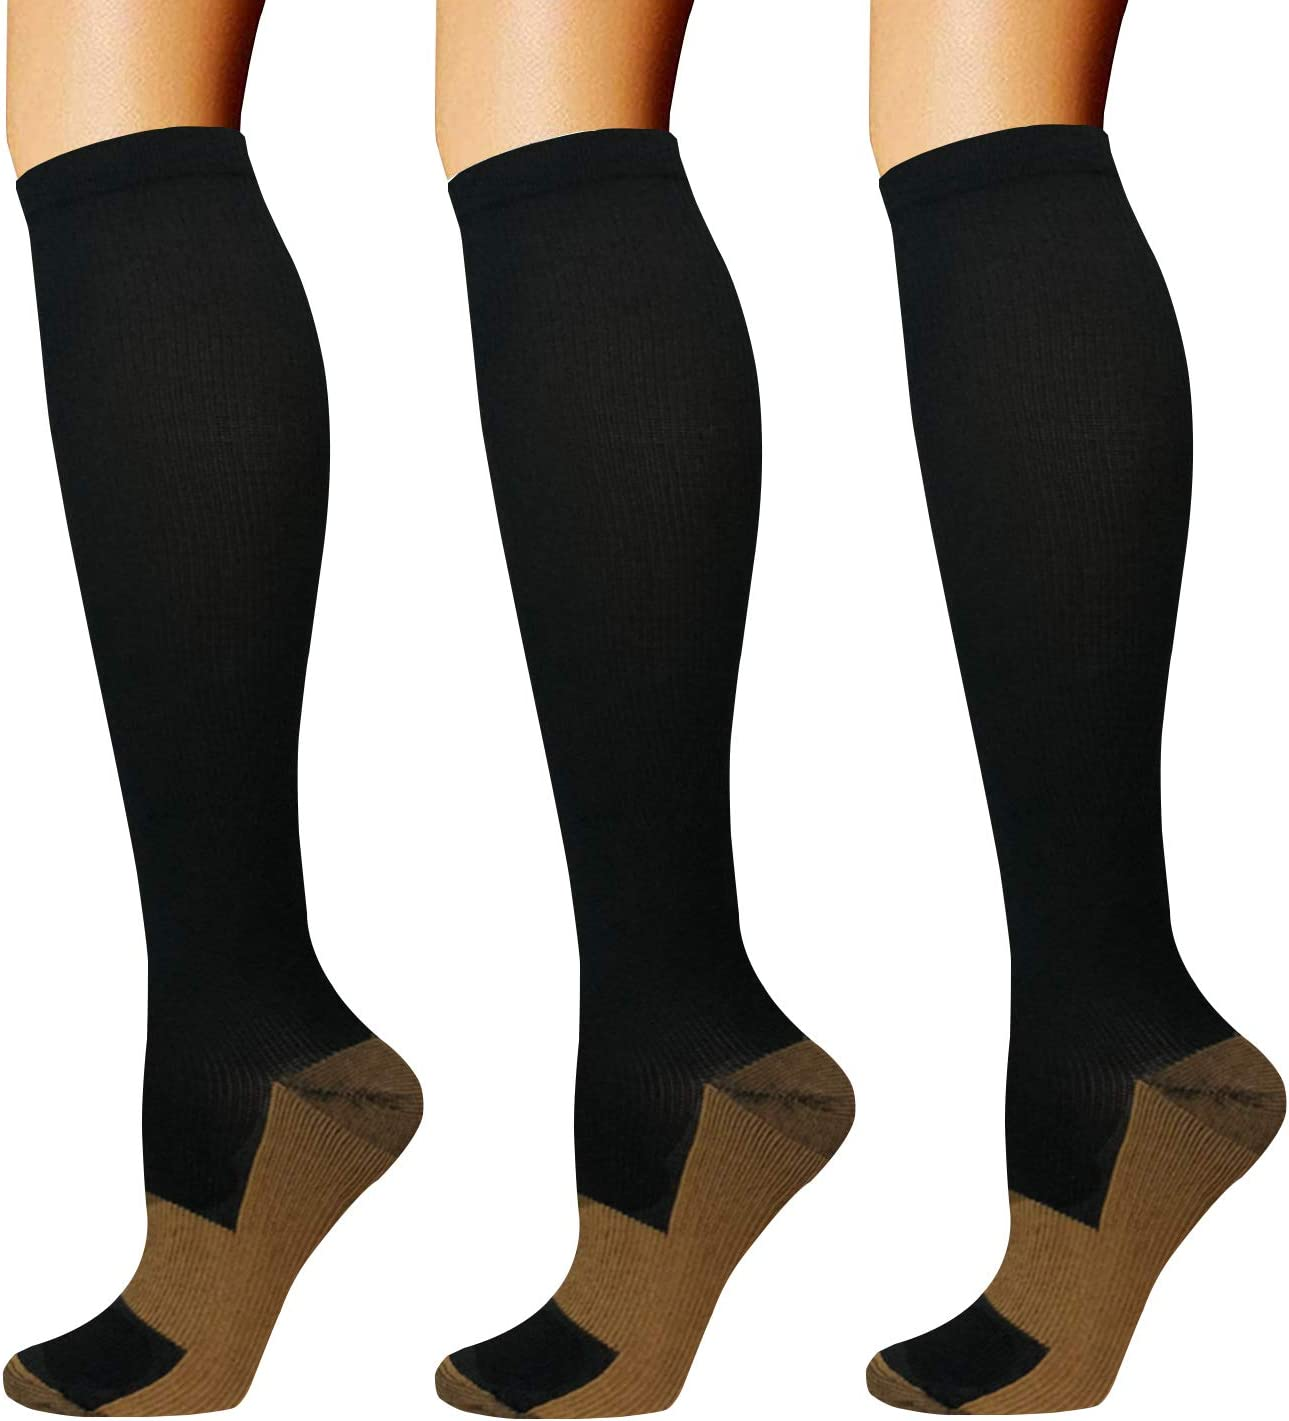 Copper Compression Socks for Men & Women(3 Pairs),15-20mmHg is Best for Running,Medical,Pregnancy,Travel,Nurses(Large/X-Large)